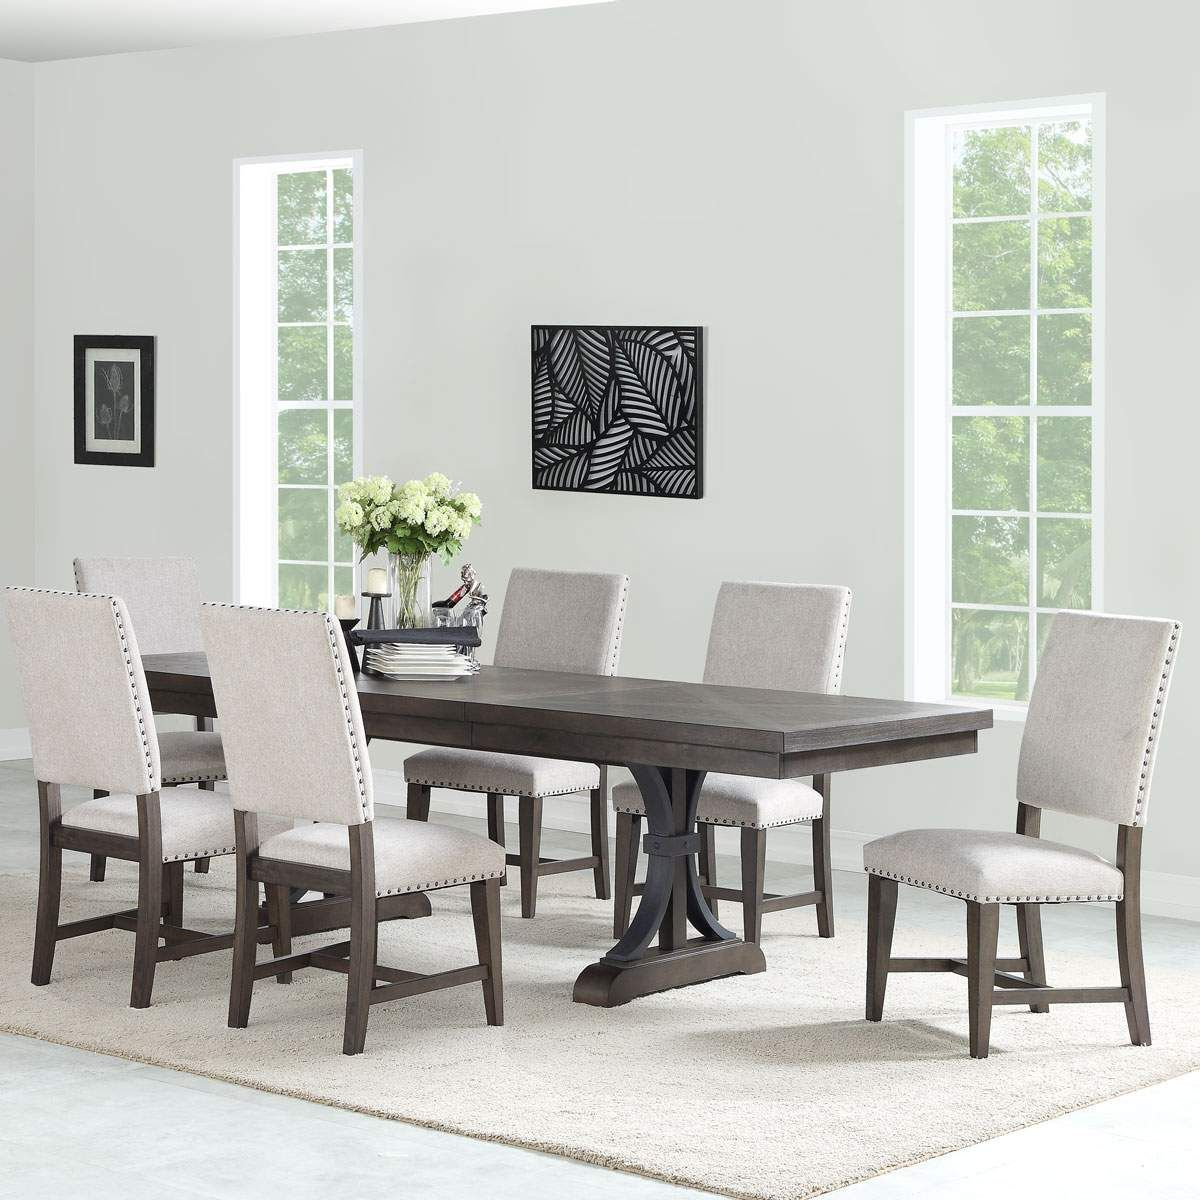 Furniture, Dining Table, Dining Room Sets Throughout Current Transitional 6 Seating Casual Dining Tables (View 8 of 25)